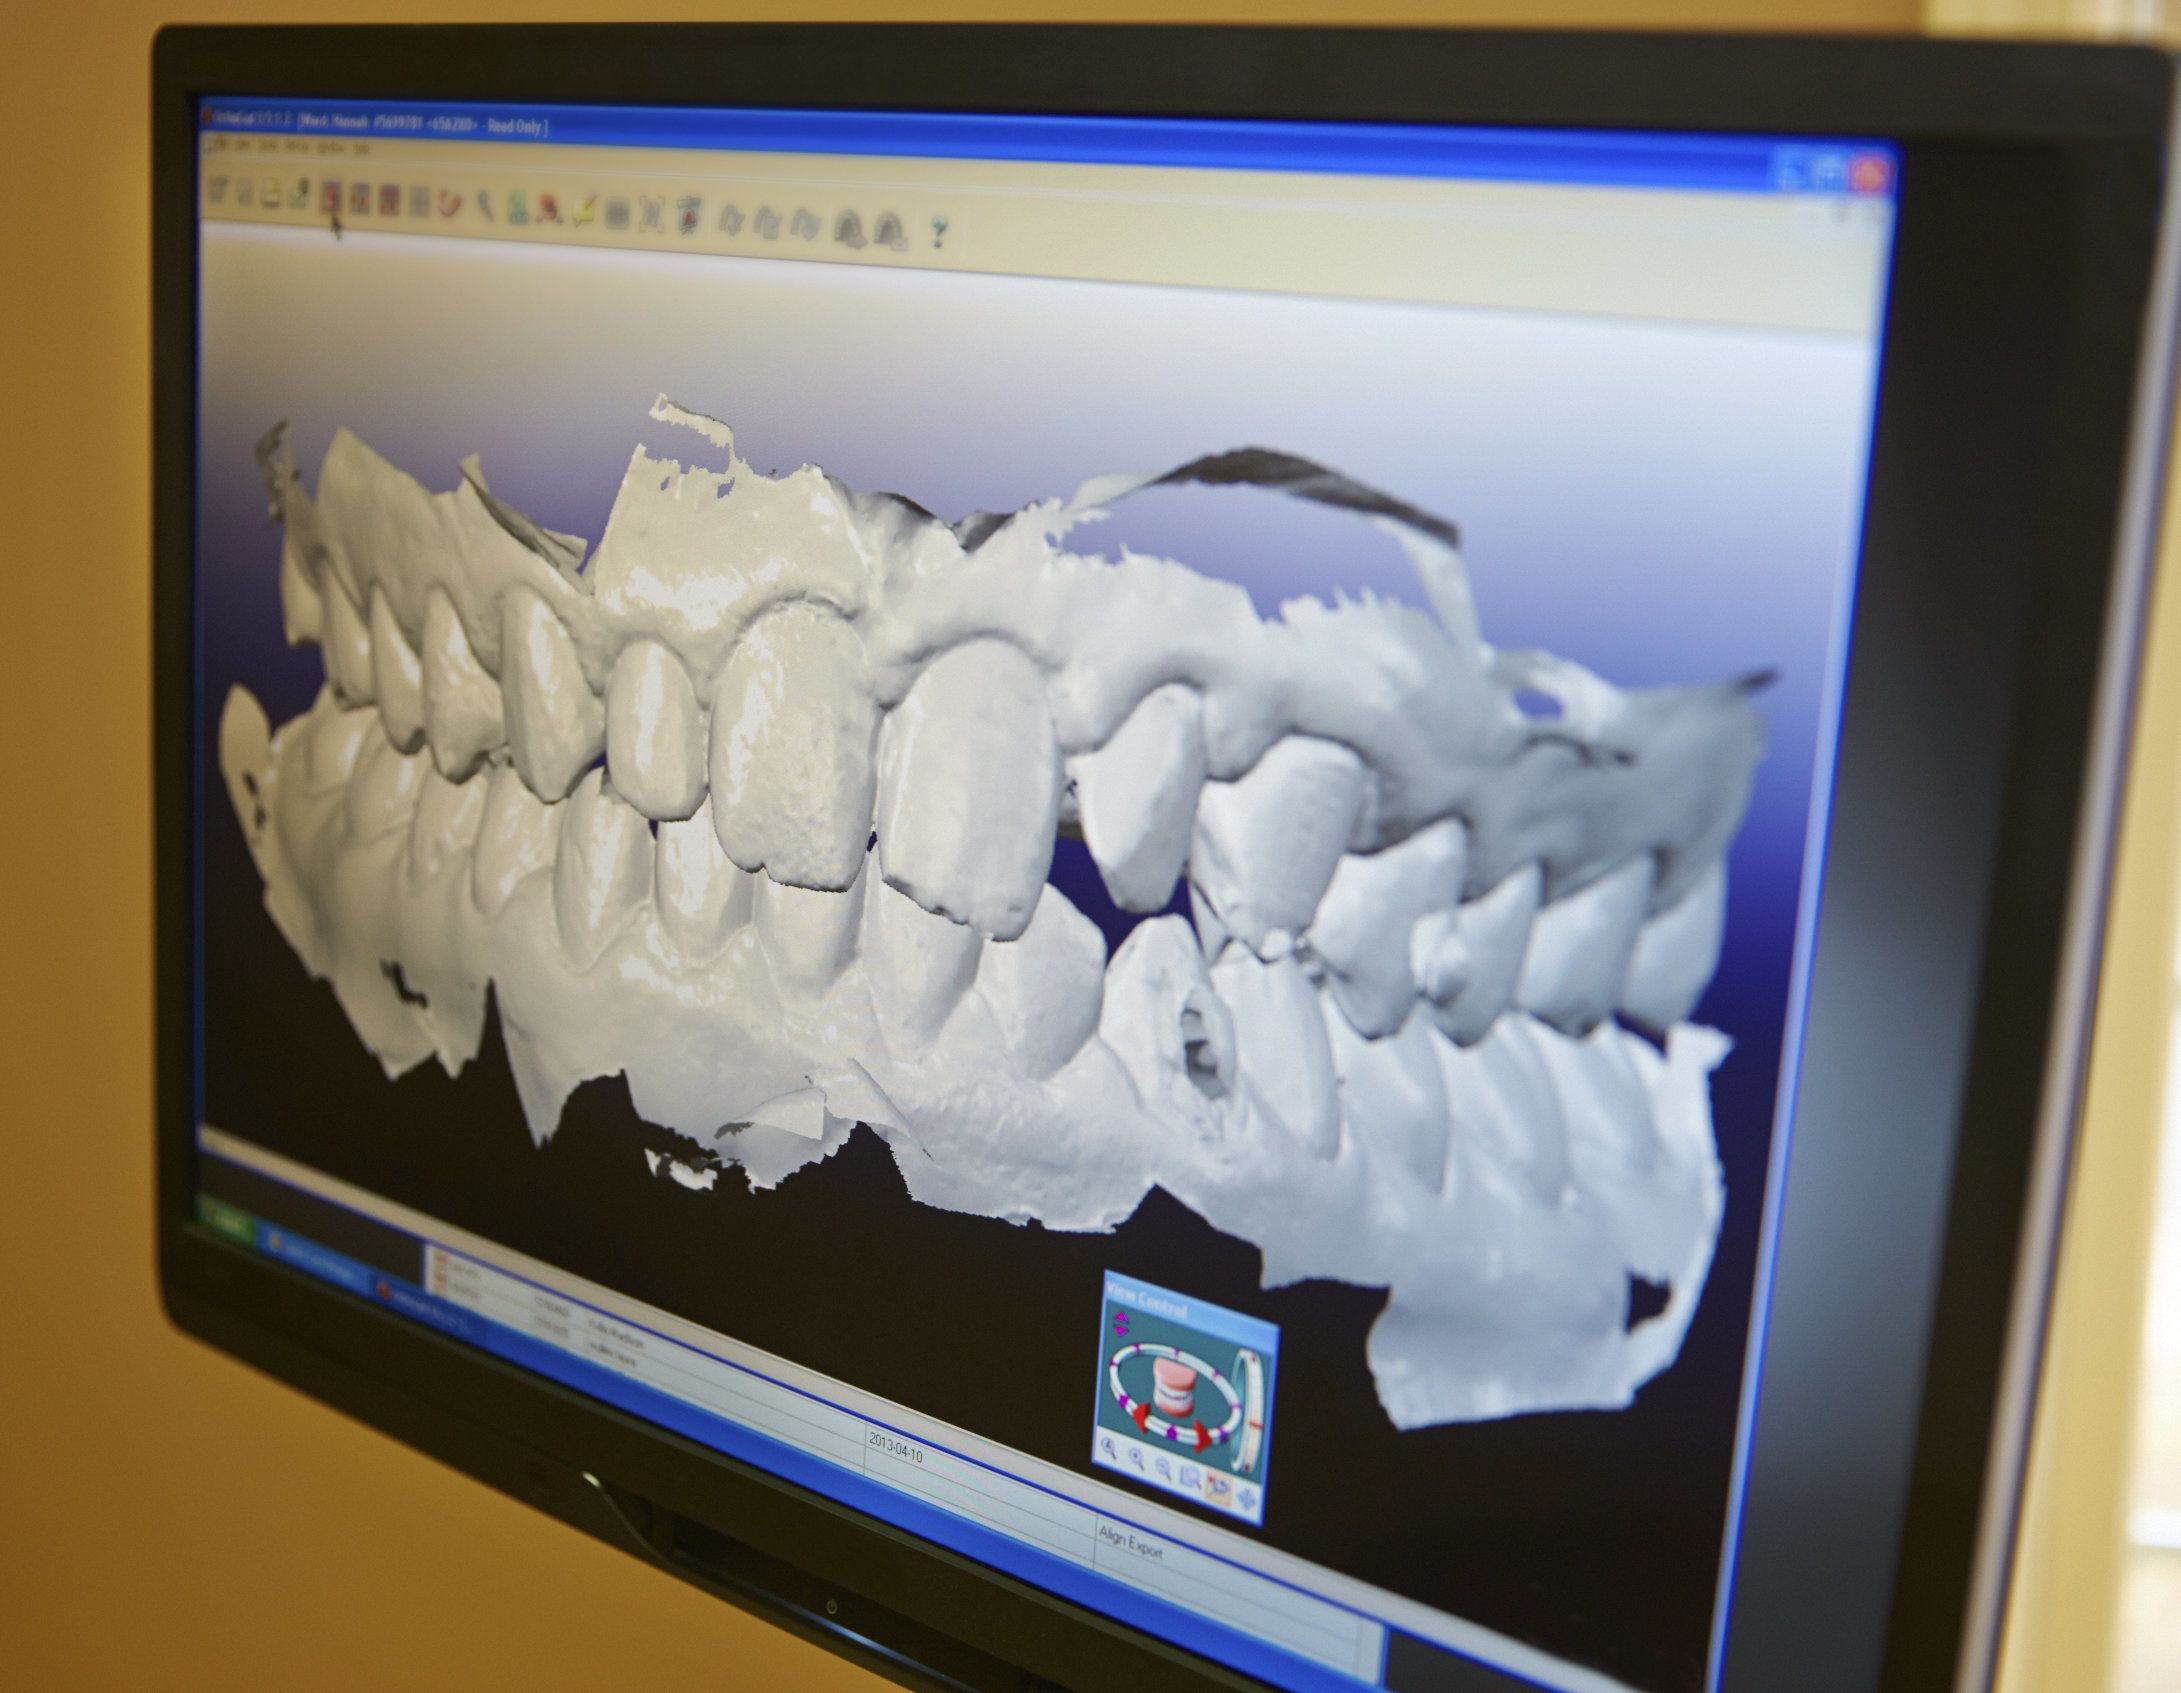 Digital image of jawbone degeneration